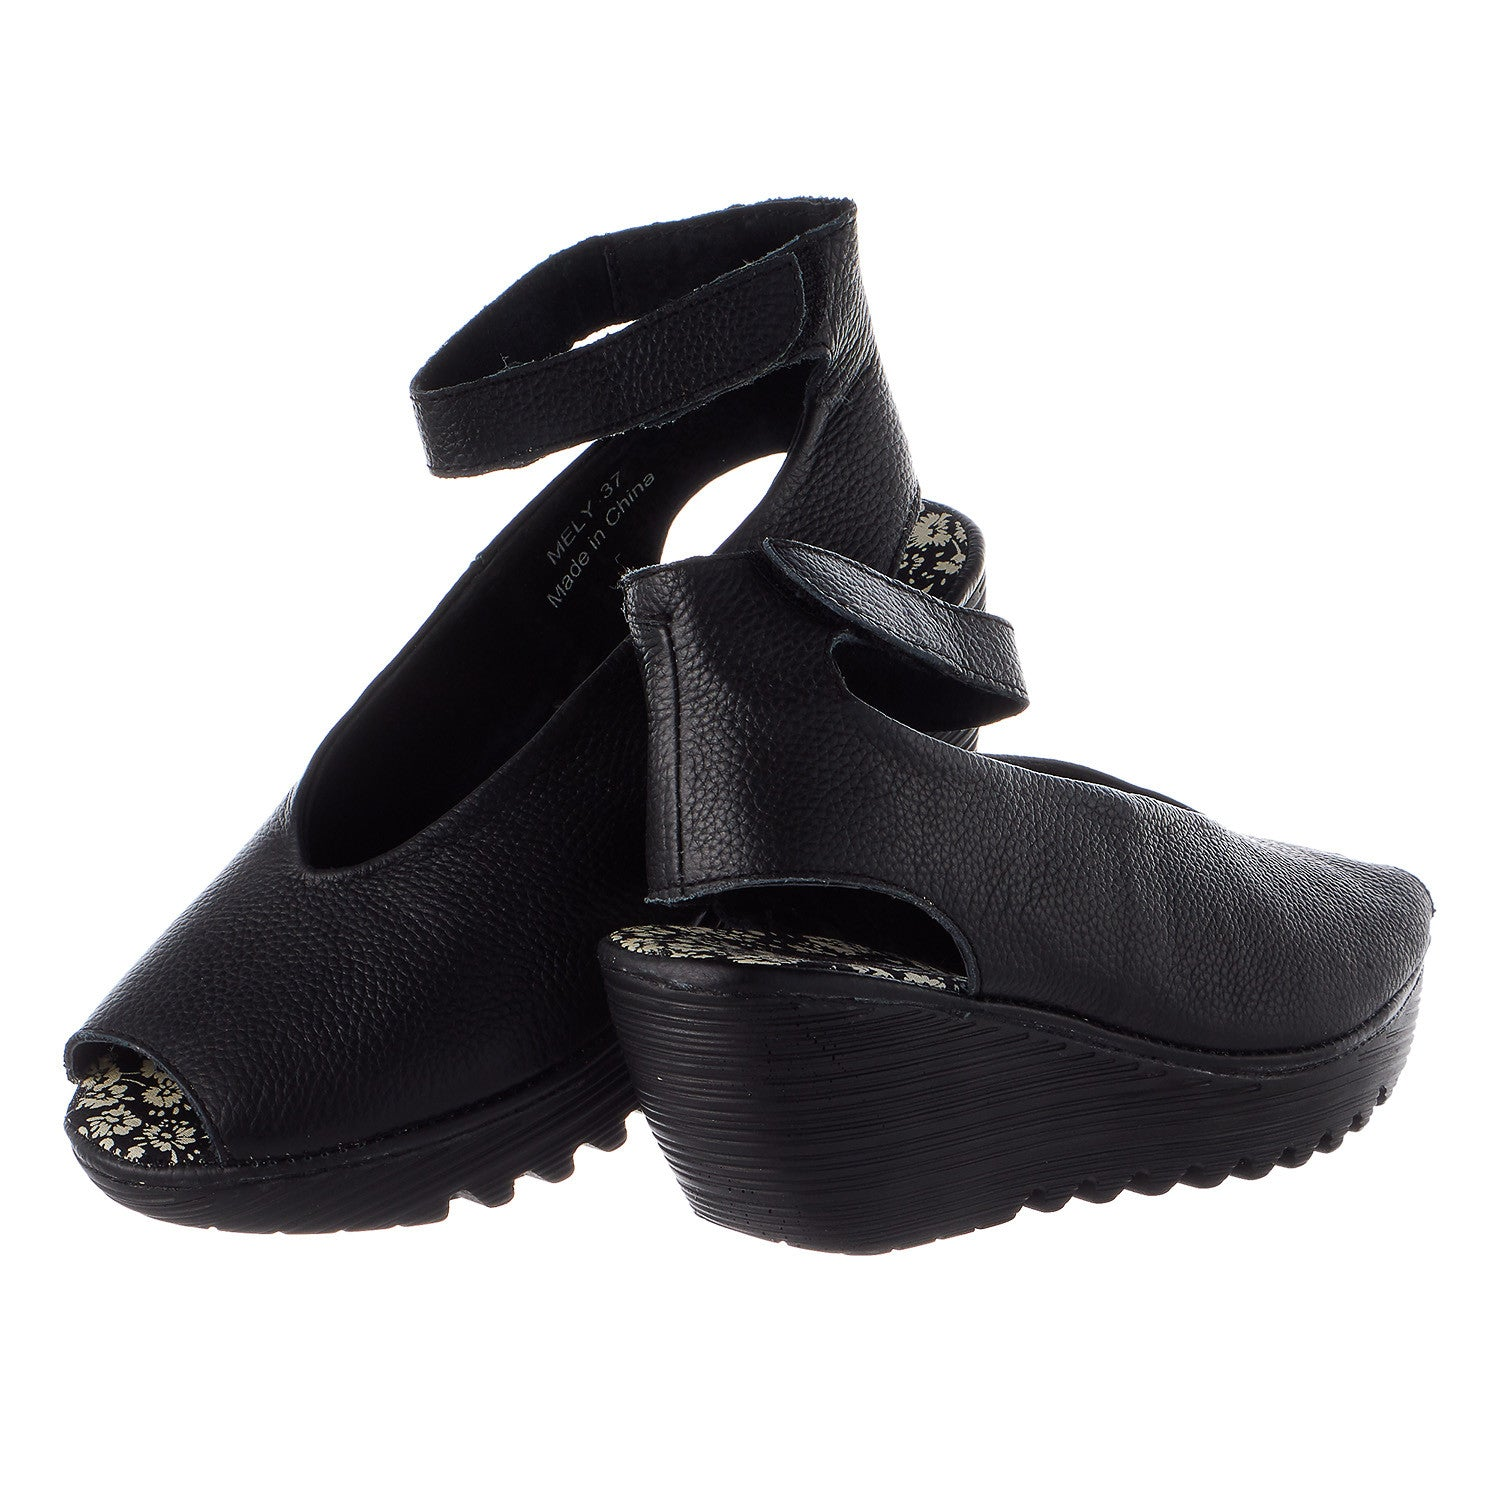 57683984397a Bernie Mev Mely Casual Shoes - Women s - Shoplifestyle